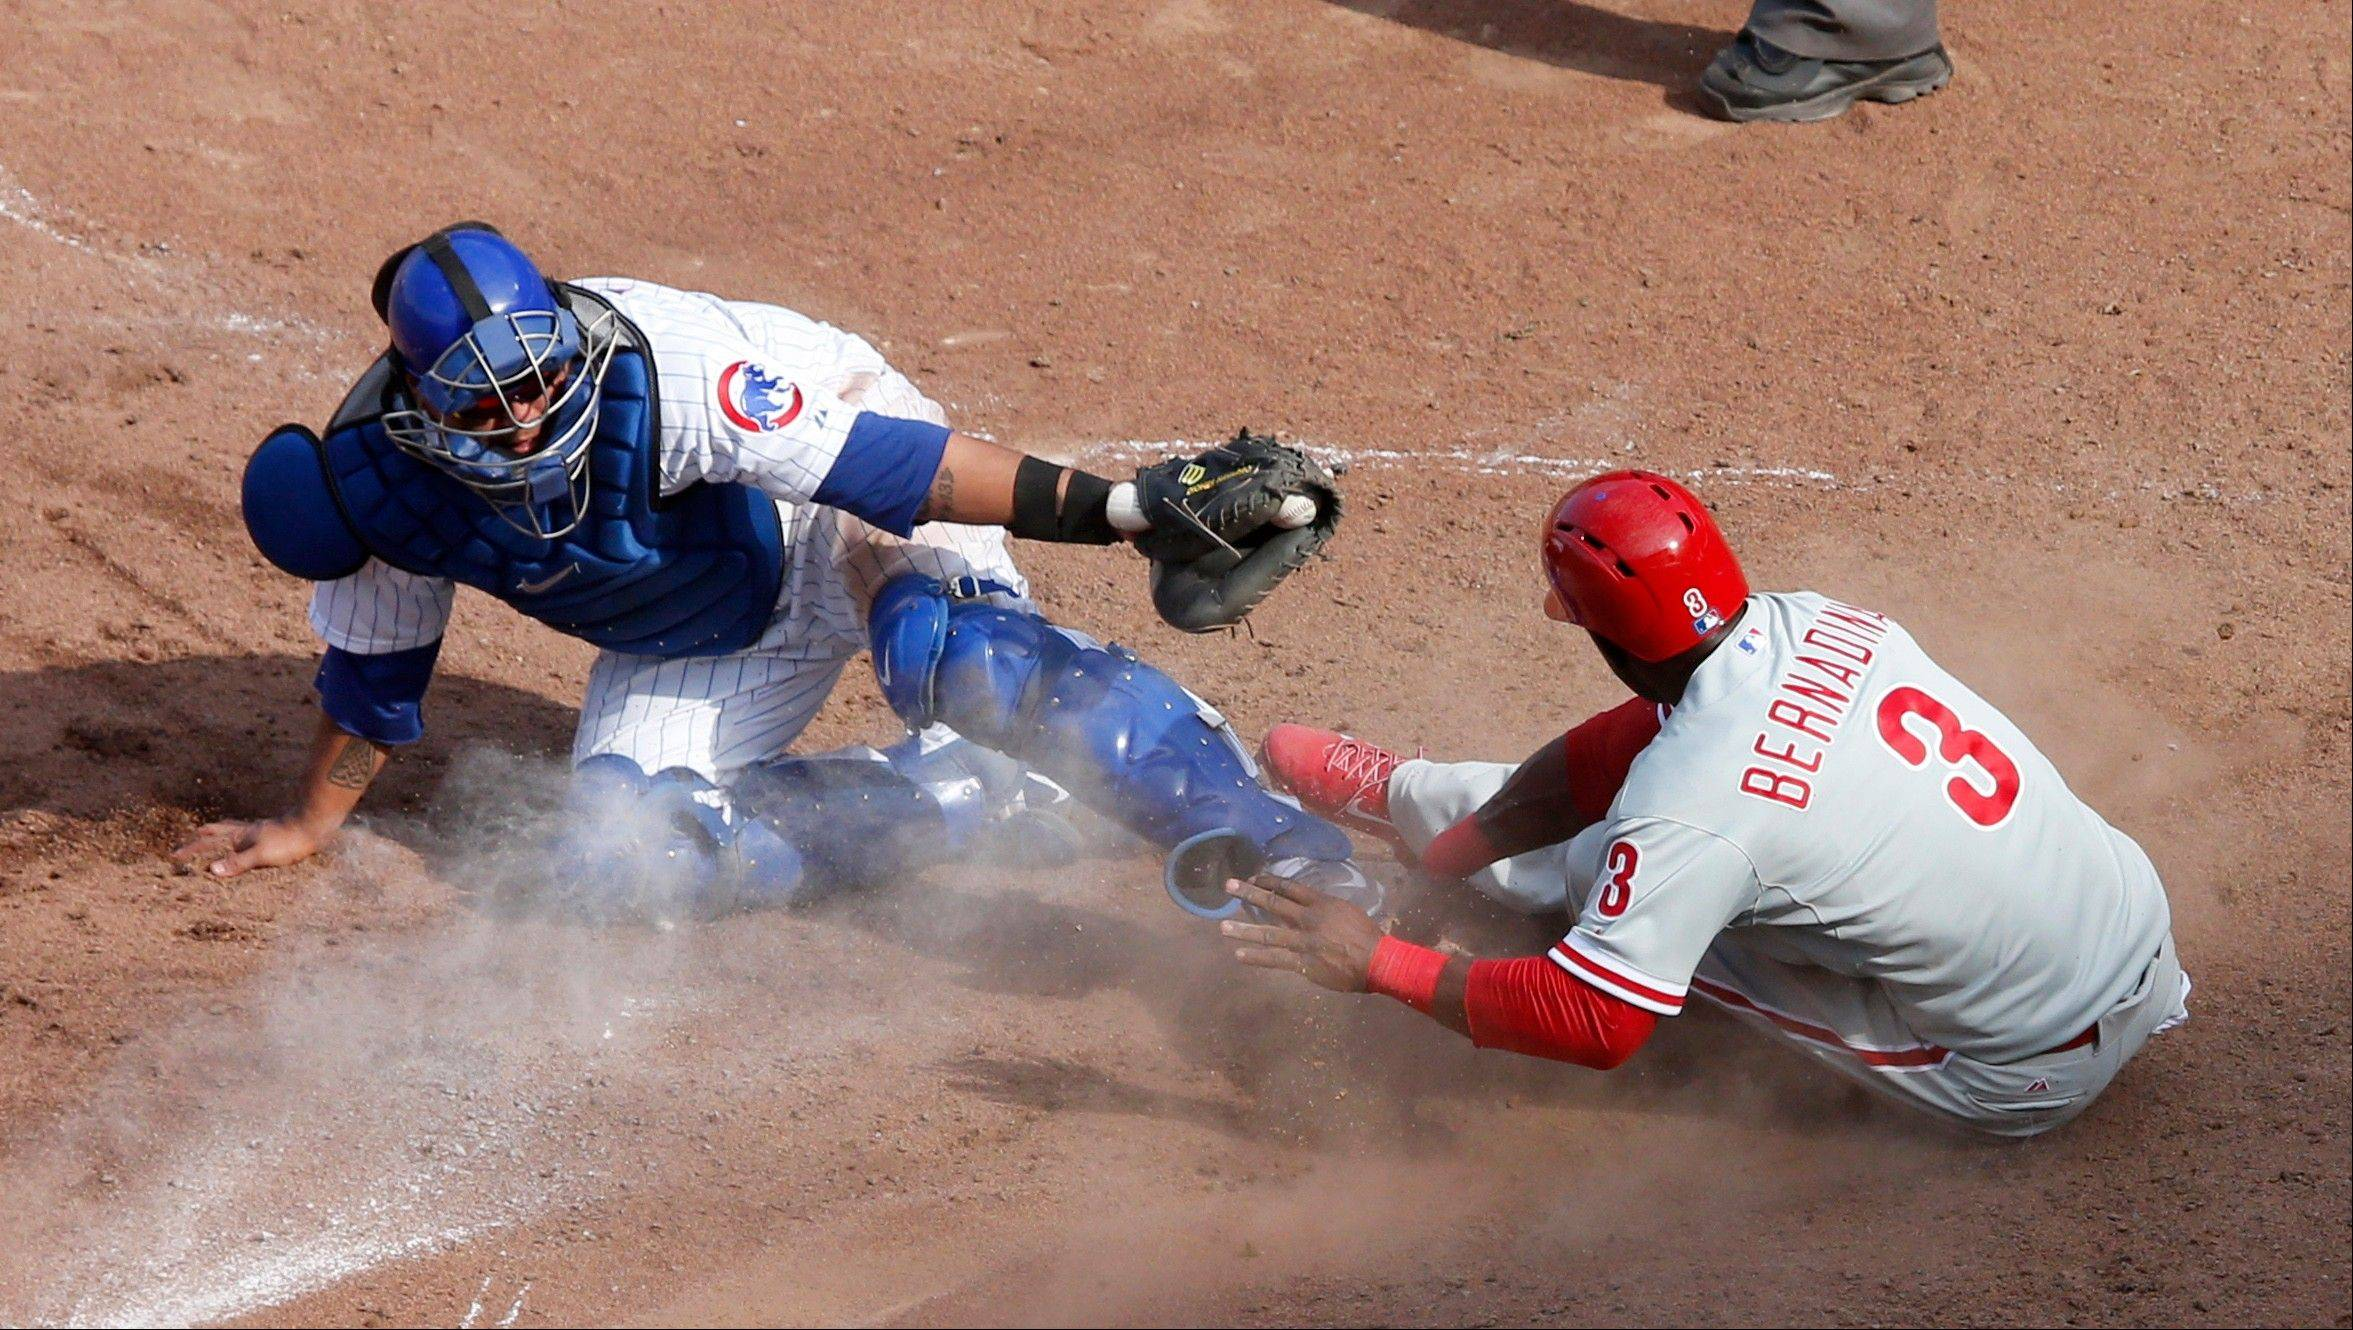 The Phillies� Roger Bernadina scores past Cubs catcher Dioner Navarro on a single by Michael Young during the ninth inning Friday in Chicago.